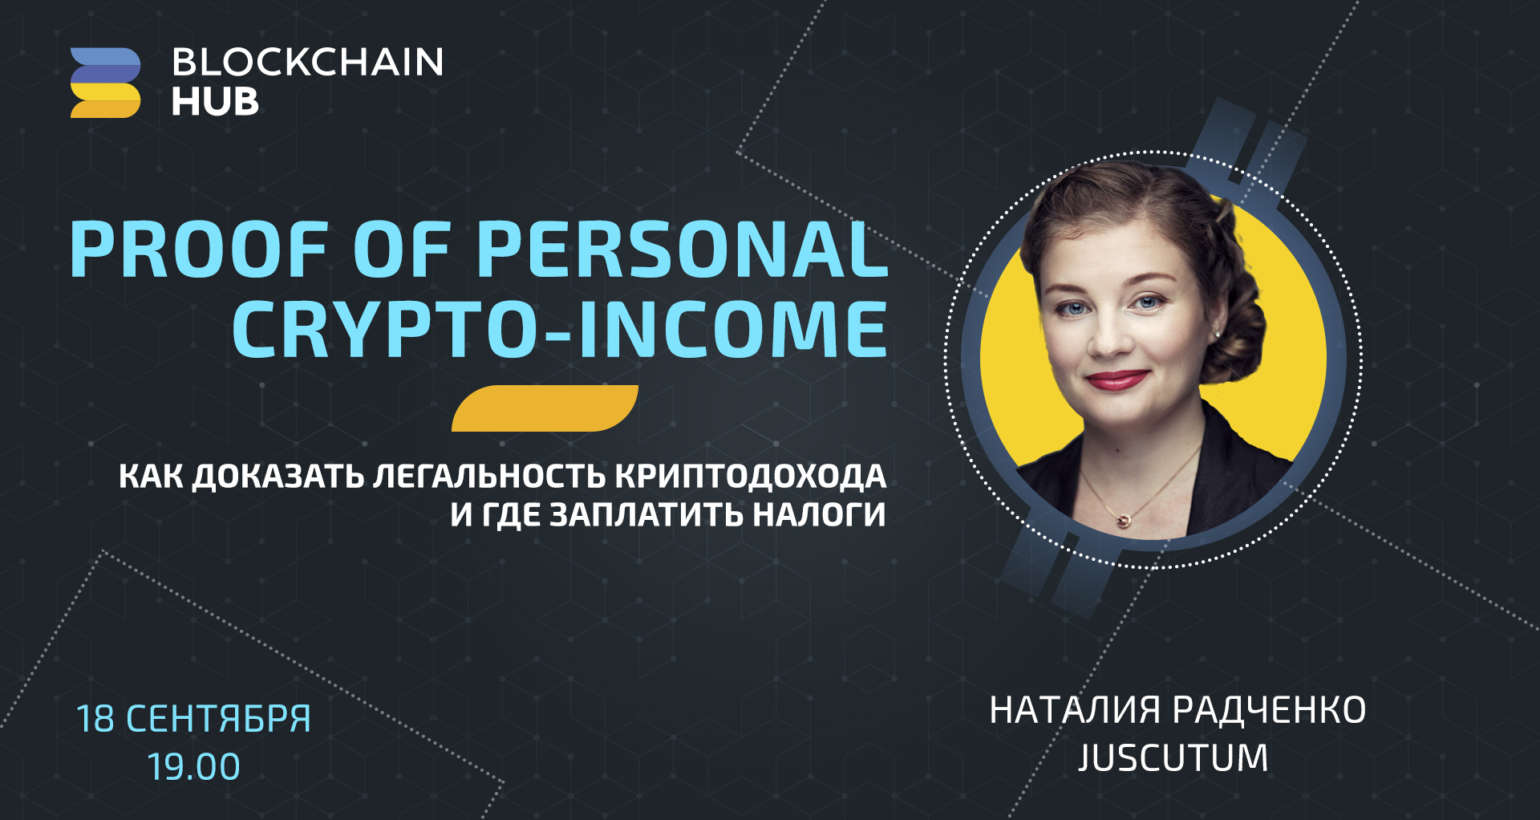 Proof of Personal Crypto-Income